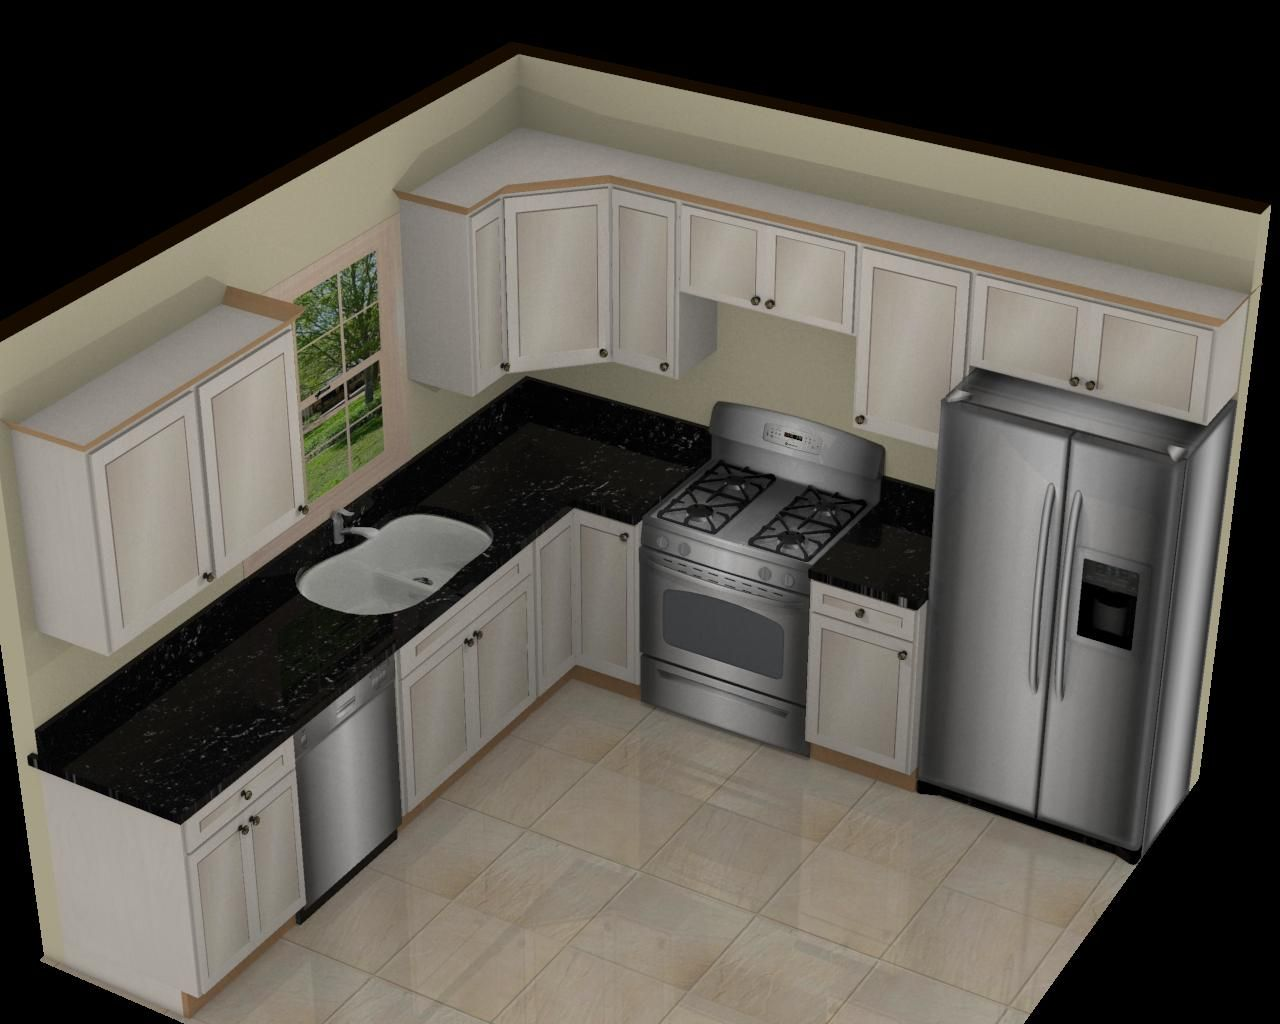 L Shaped Kitchen Layout Similar To Original Design Get Rid Of Window Long Pantry Add